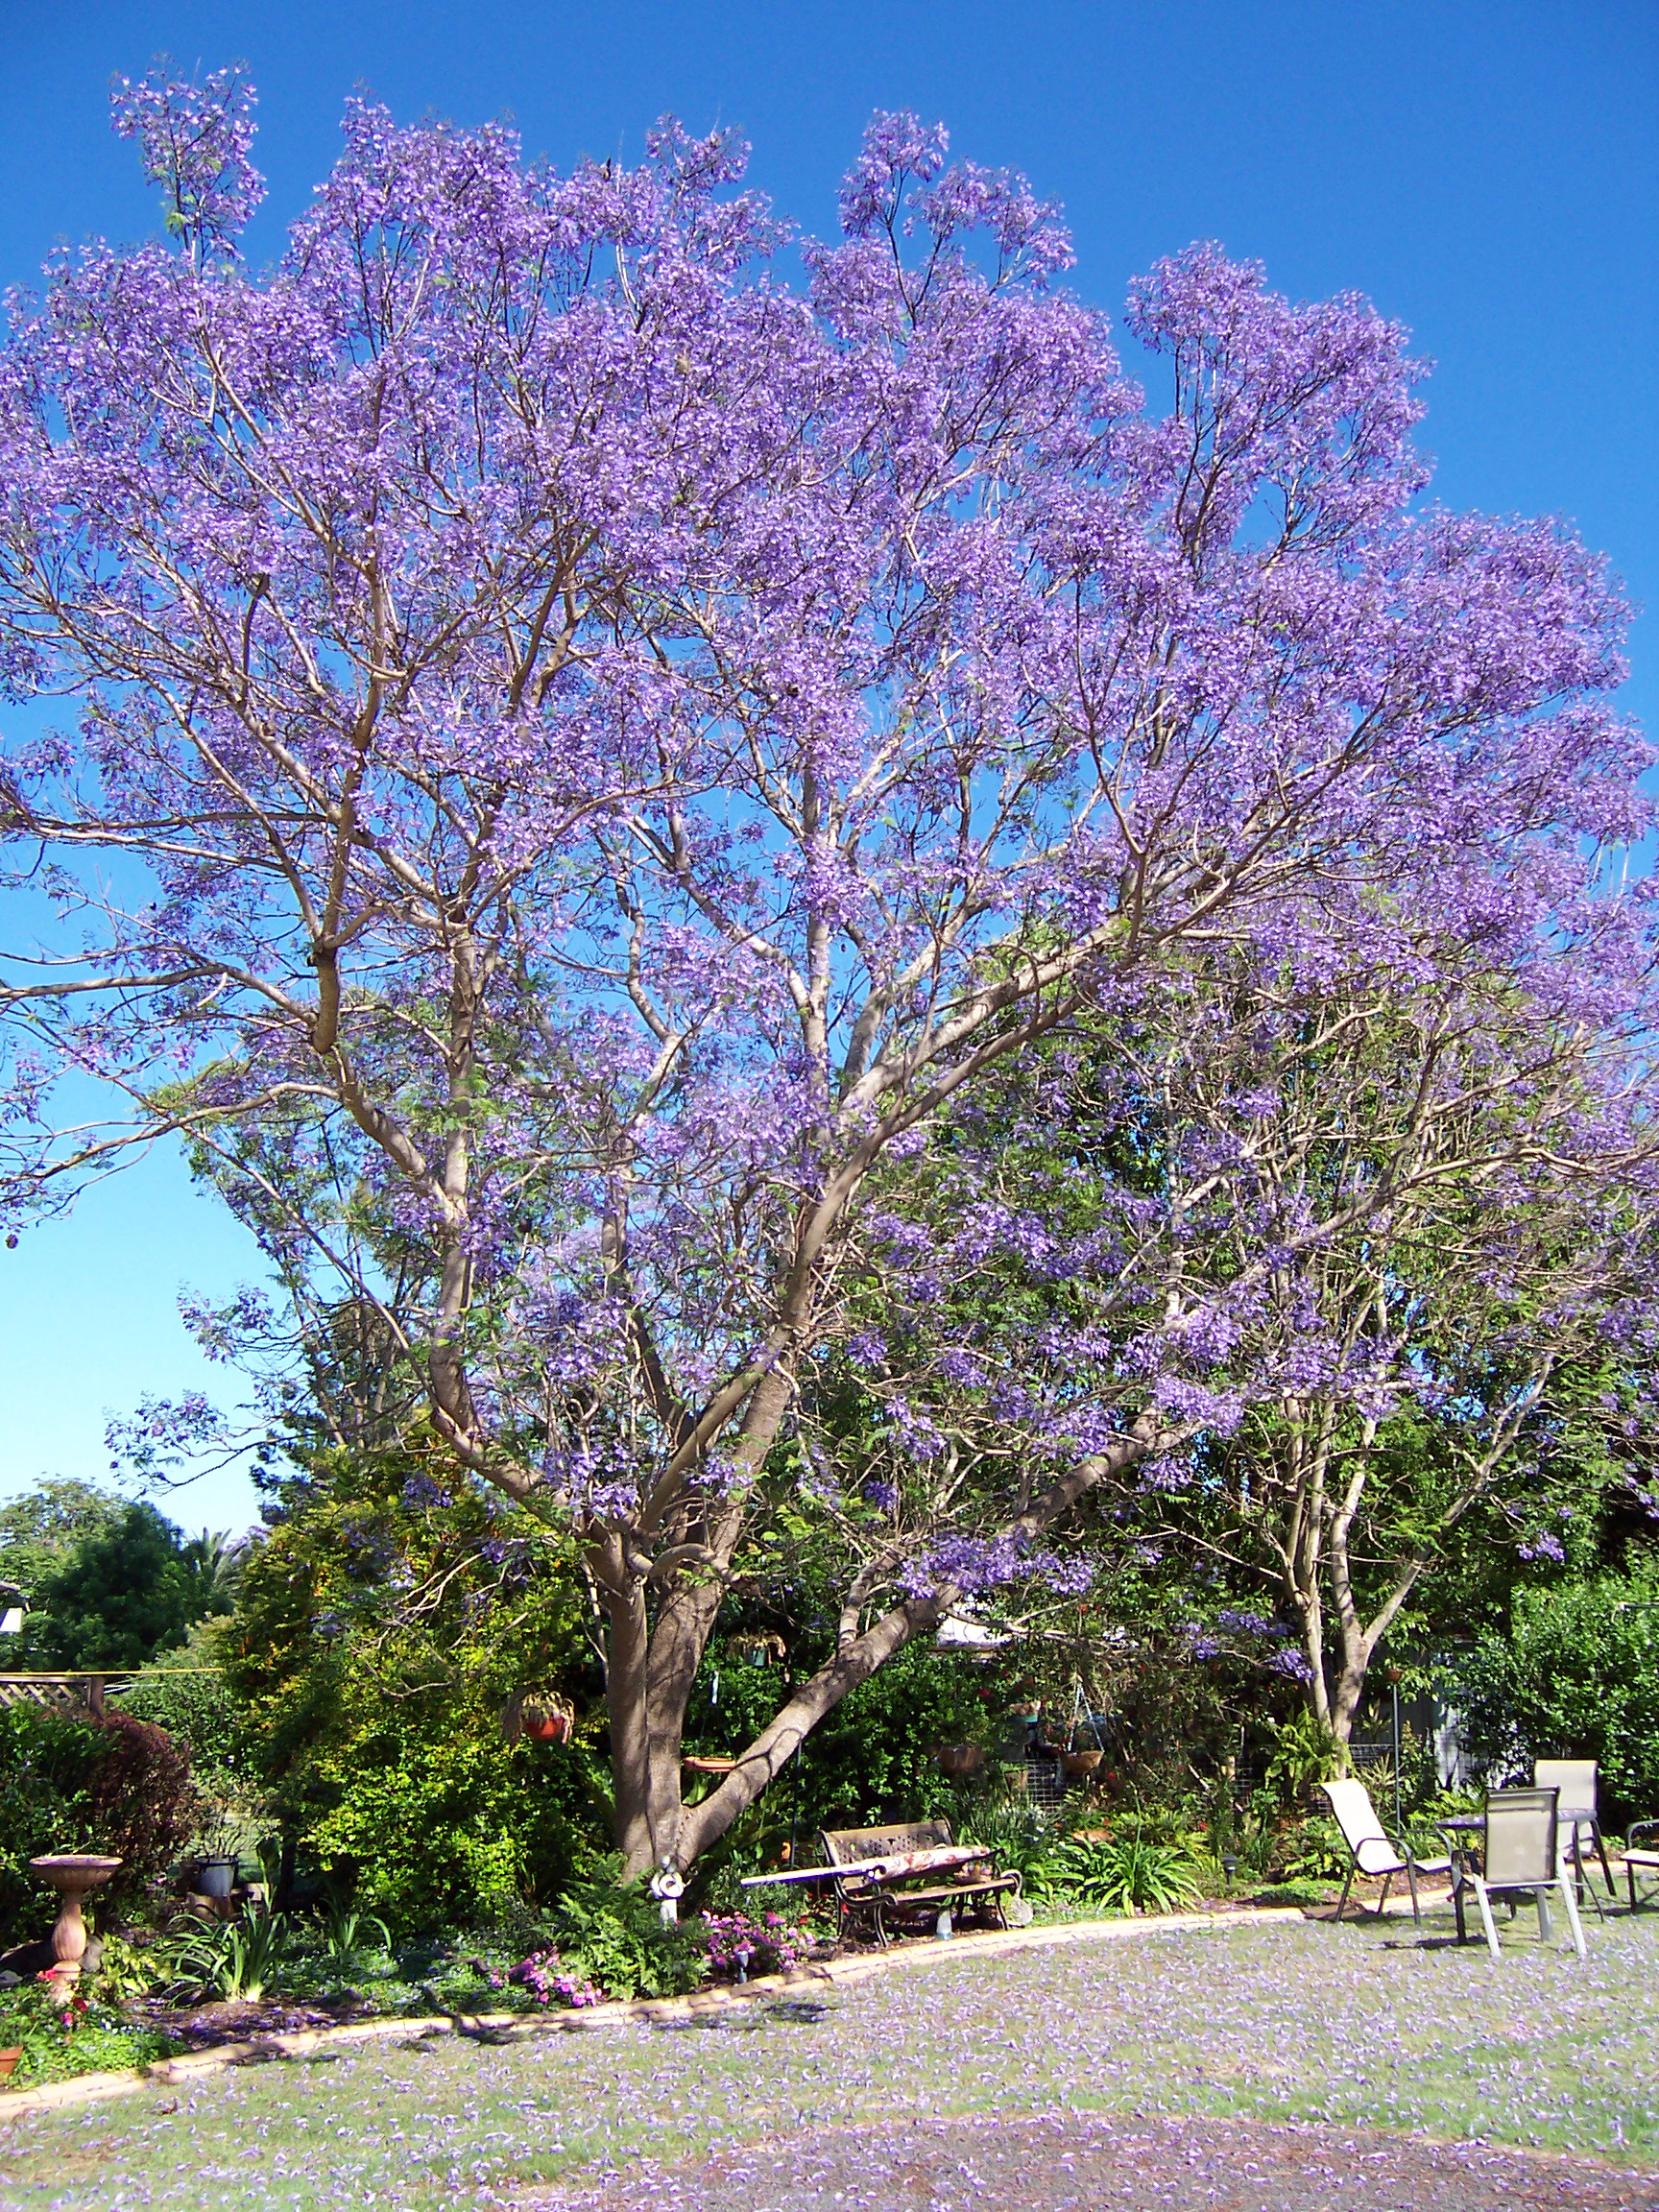 https://upload.wikimedia.org/wikipedia/commons/3/3a/Jacaranda1.JPG